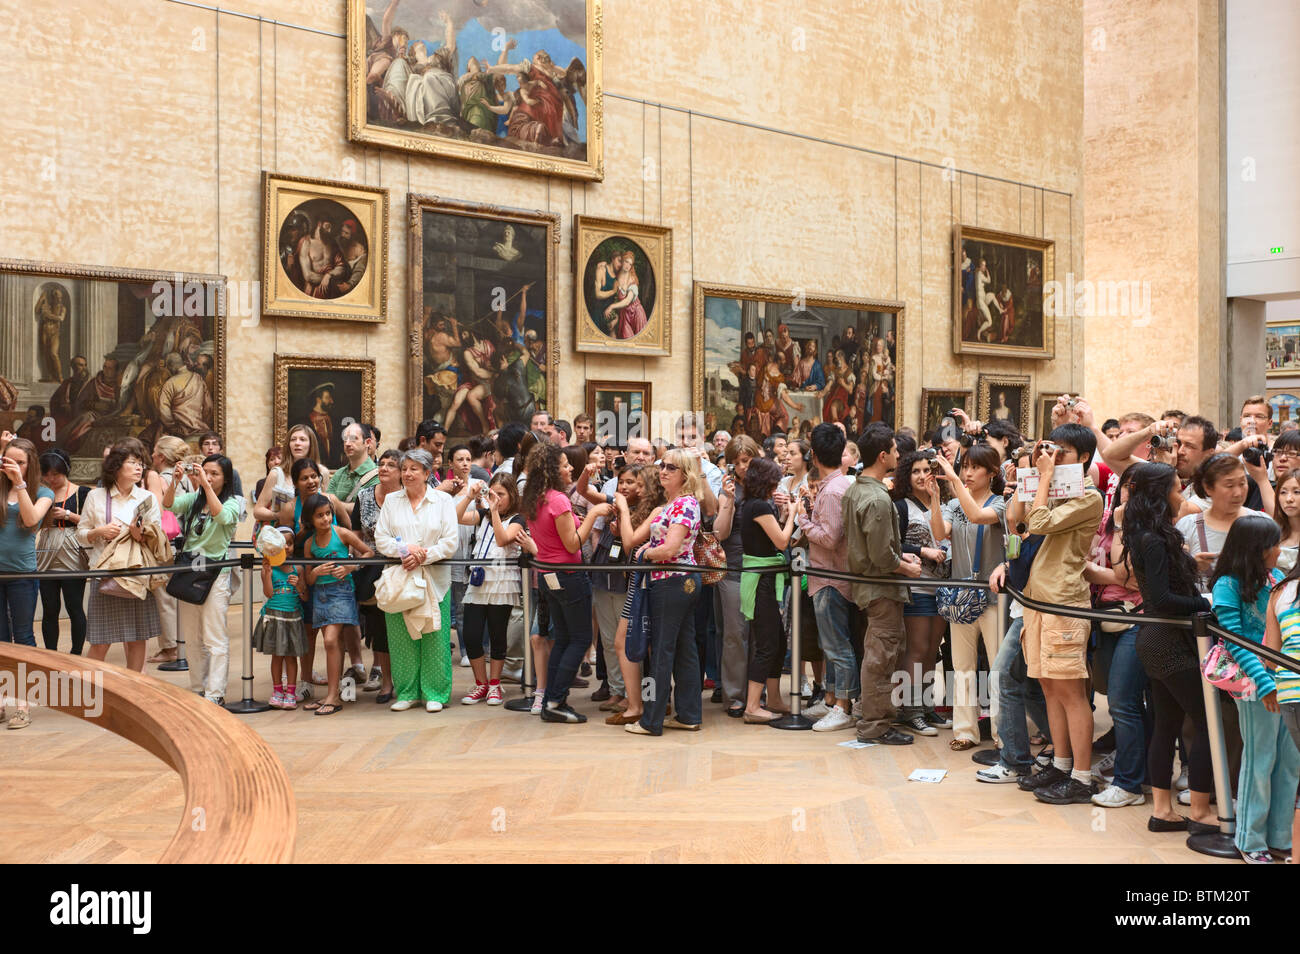 Visitors in front of Mona Lisa Louvre Museum Paris - Stock Image